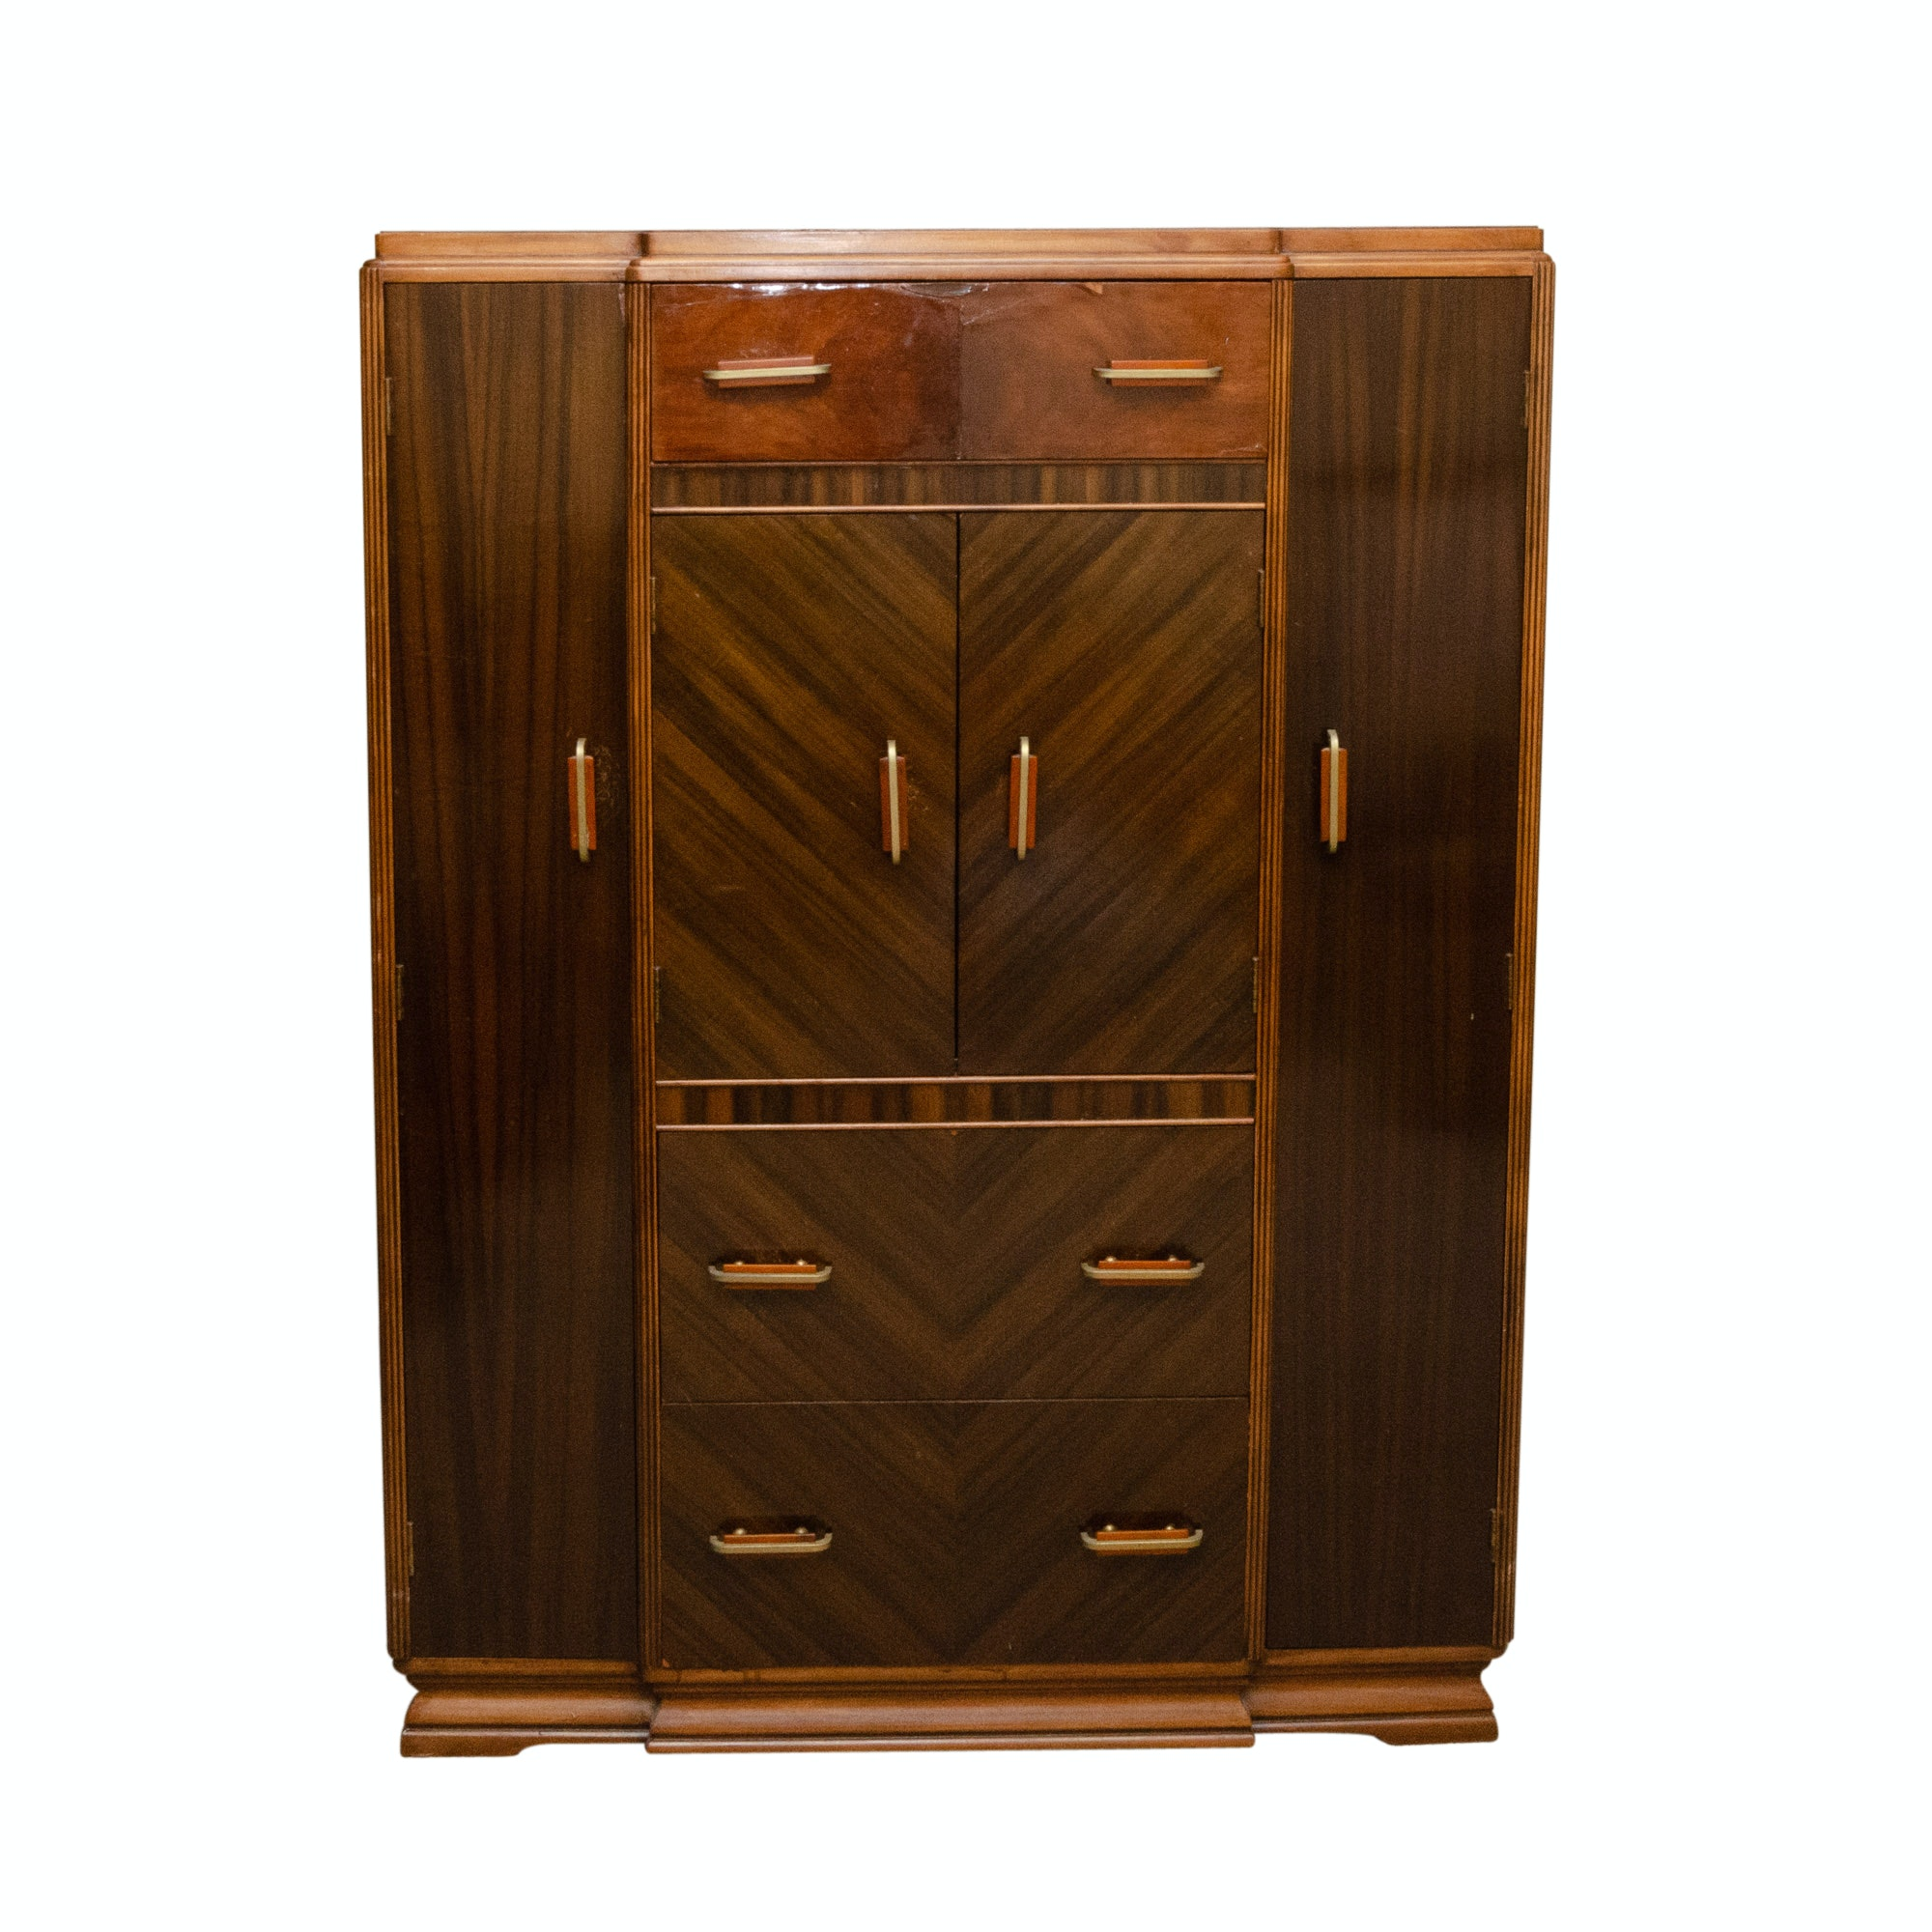 1940s Art Deco Style Waterfall Wardrobe